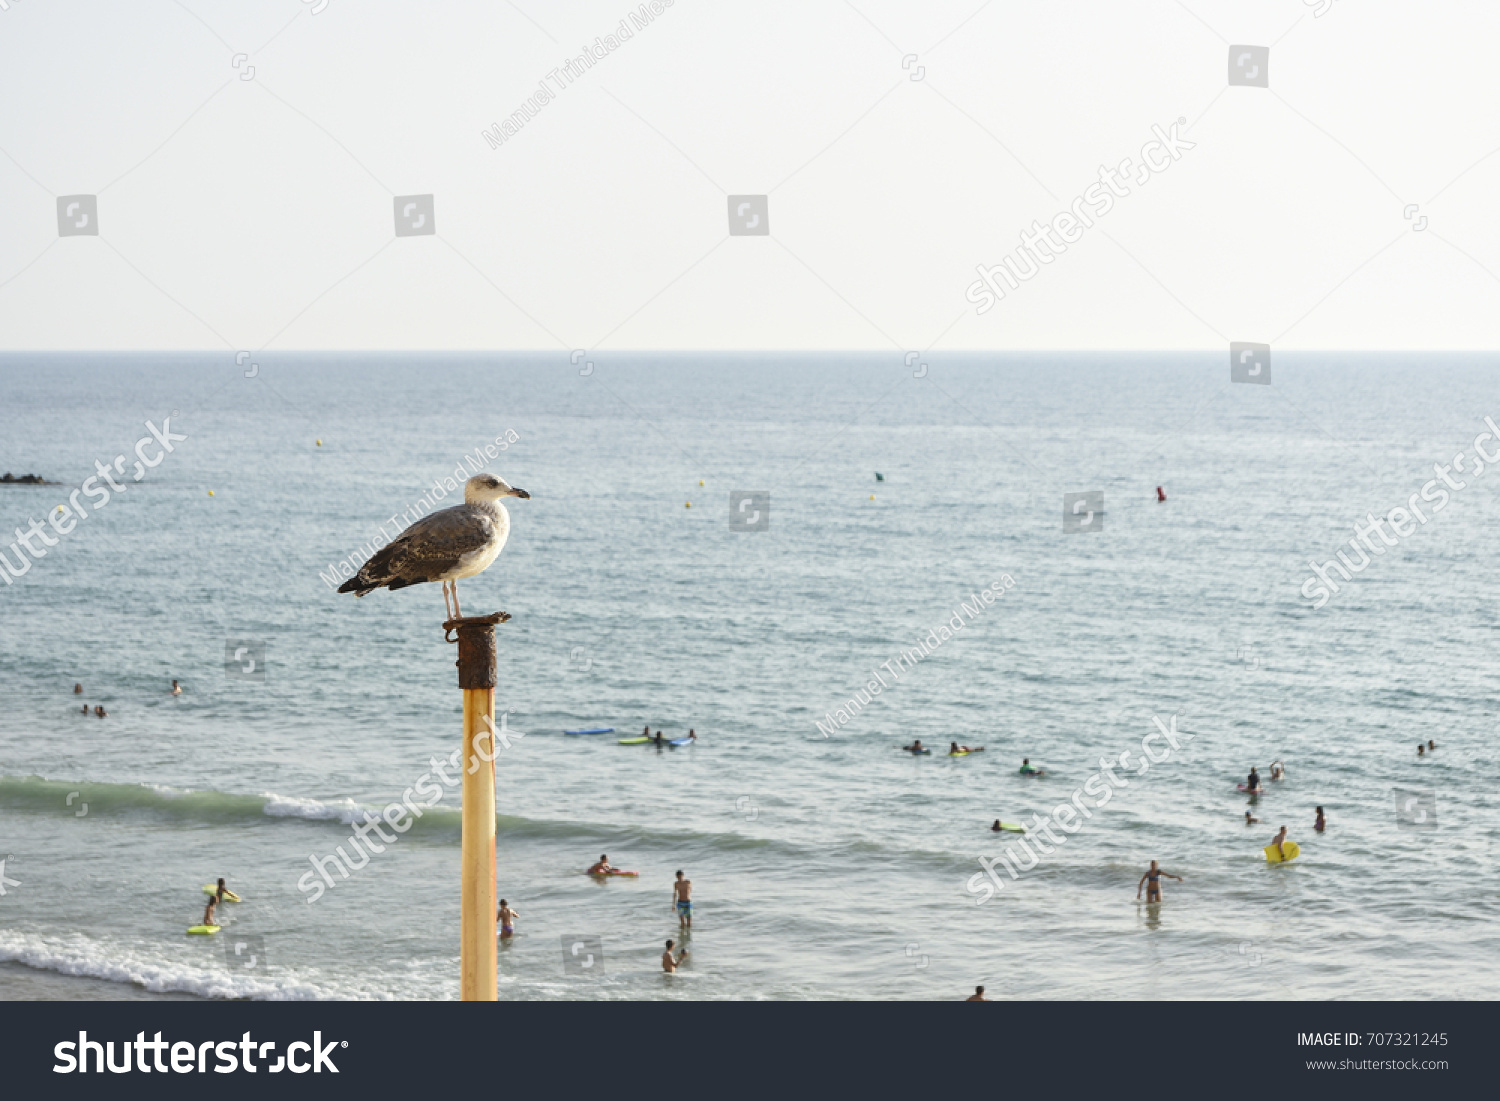 stock-photo-a-seagull-looks-at-people-on